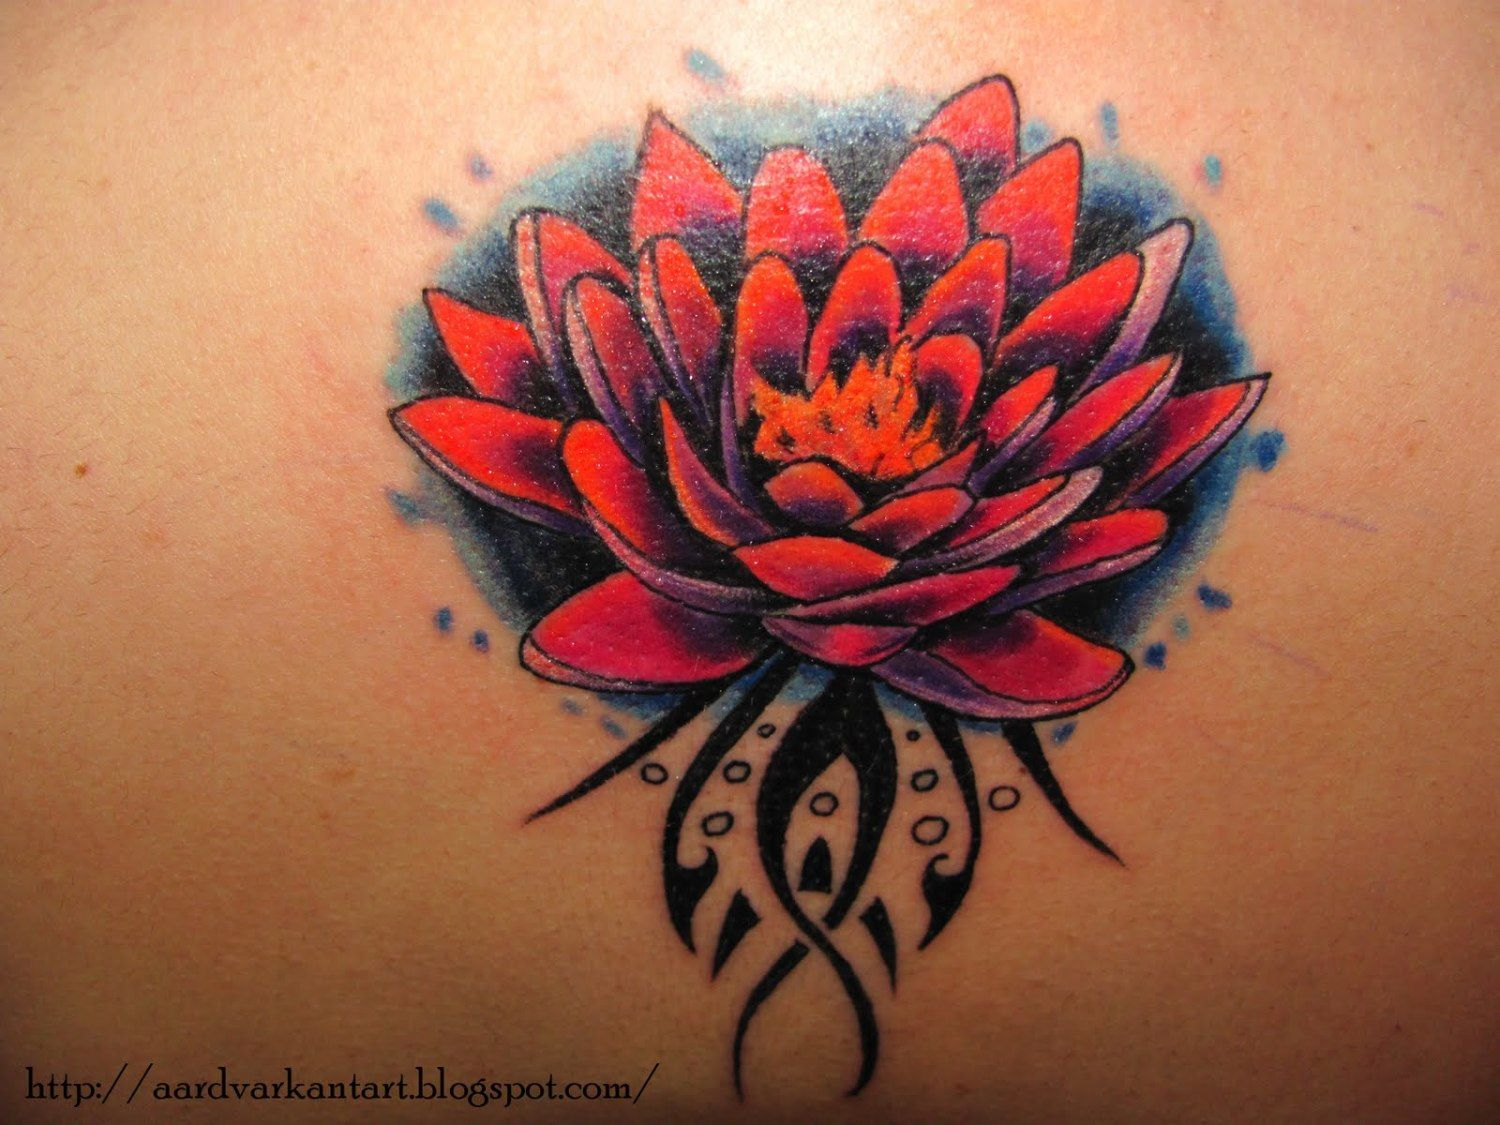 Tribal lotus flower tattoo ideas pictures tatts pinterest tribal lotus flower tattoo ideas pictures izmirmasajfo Images